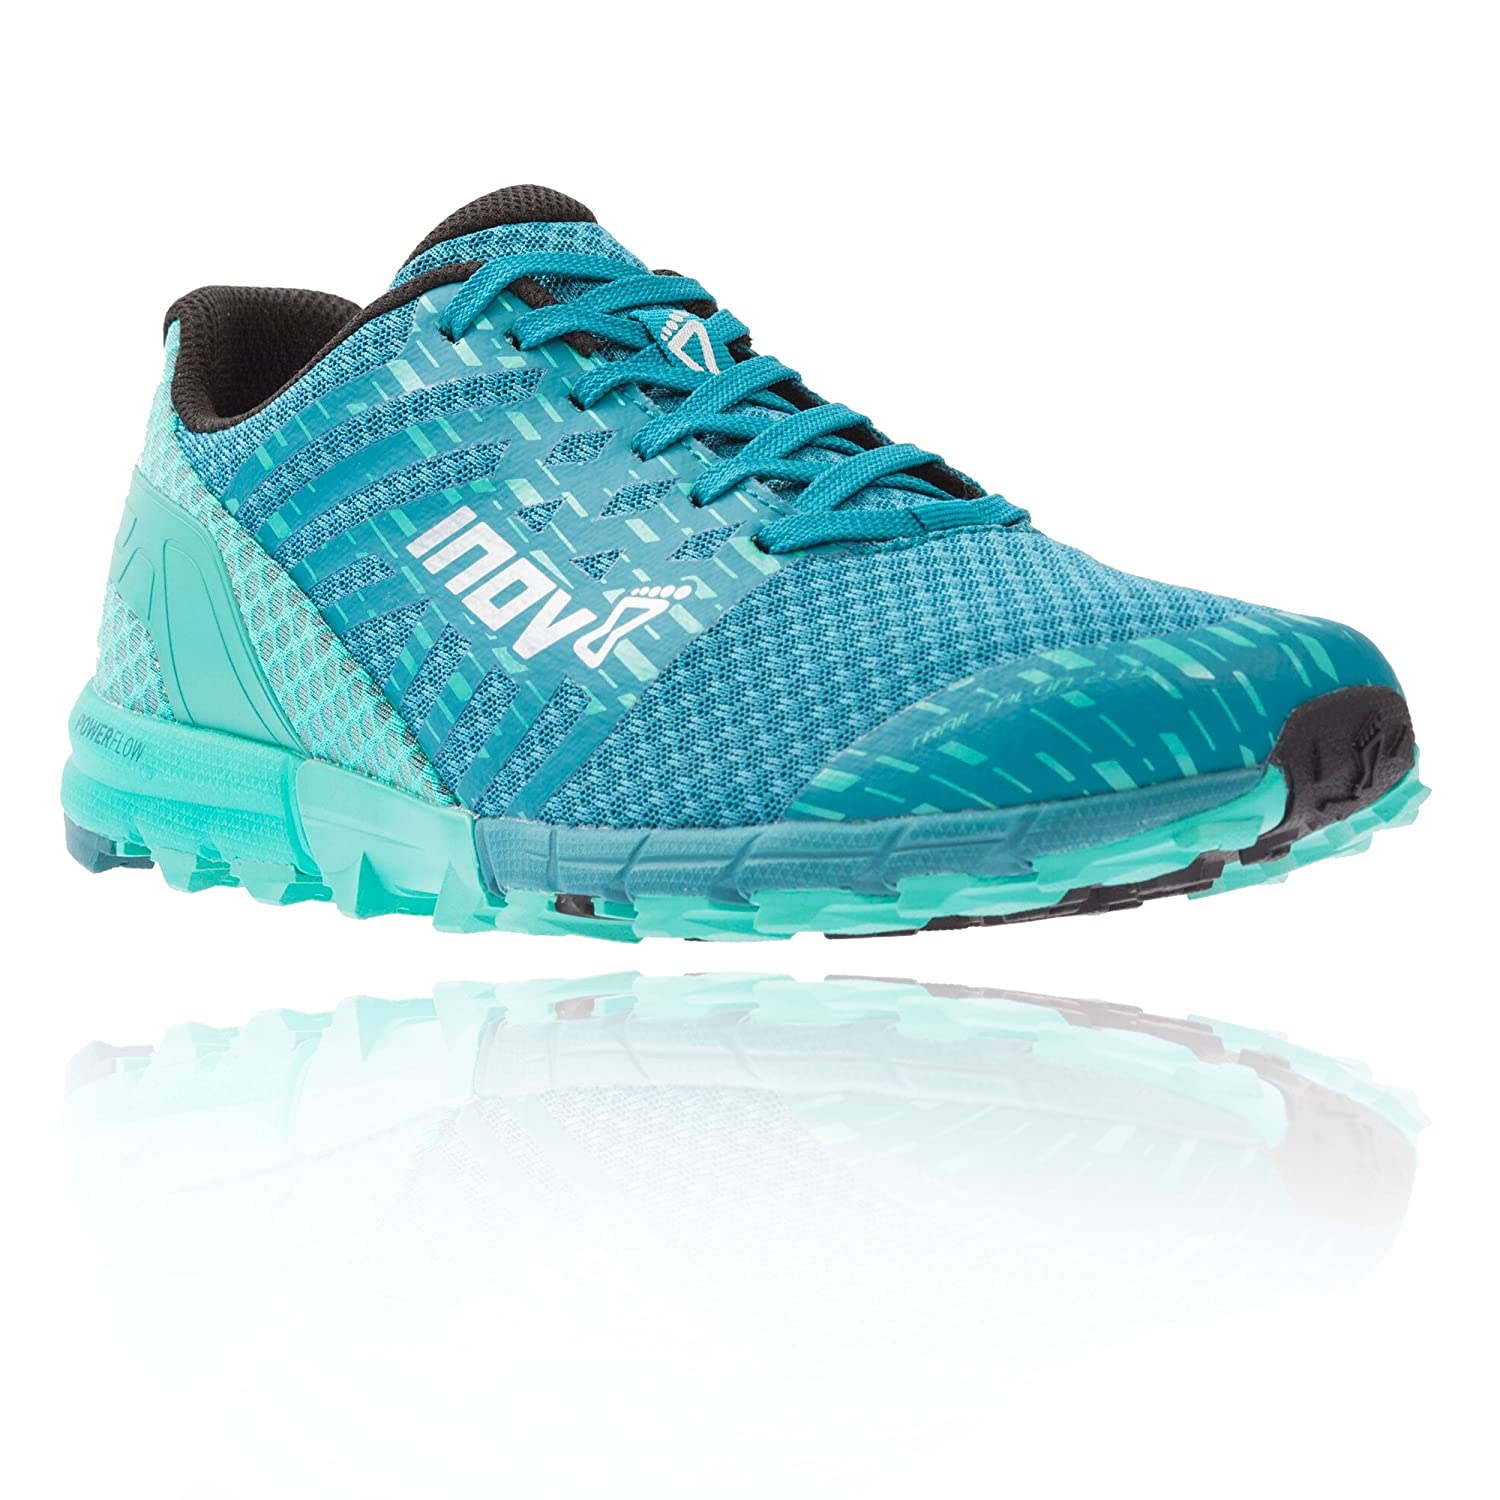 Inov-8 Women's Trailtalon 235 (W) Trail Running Shoe B07DWPSDN1 10 W US|Blue Grey / Black